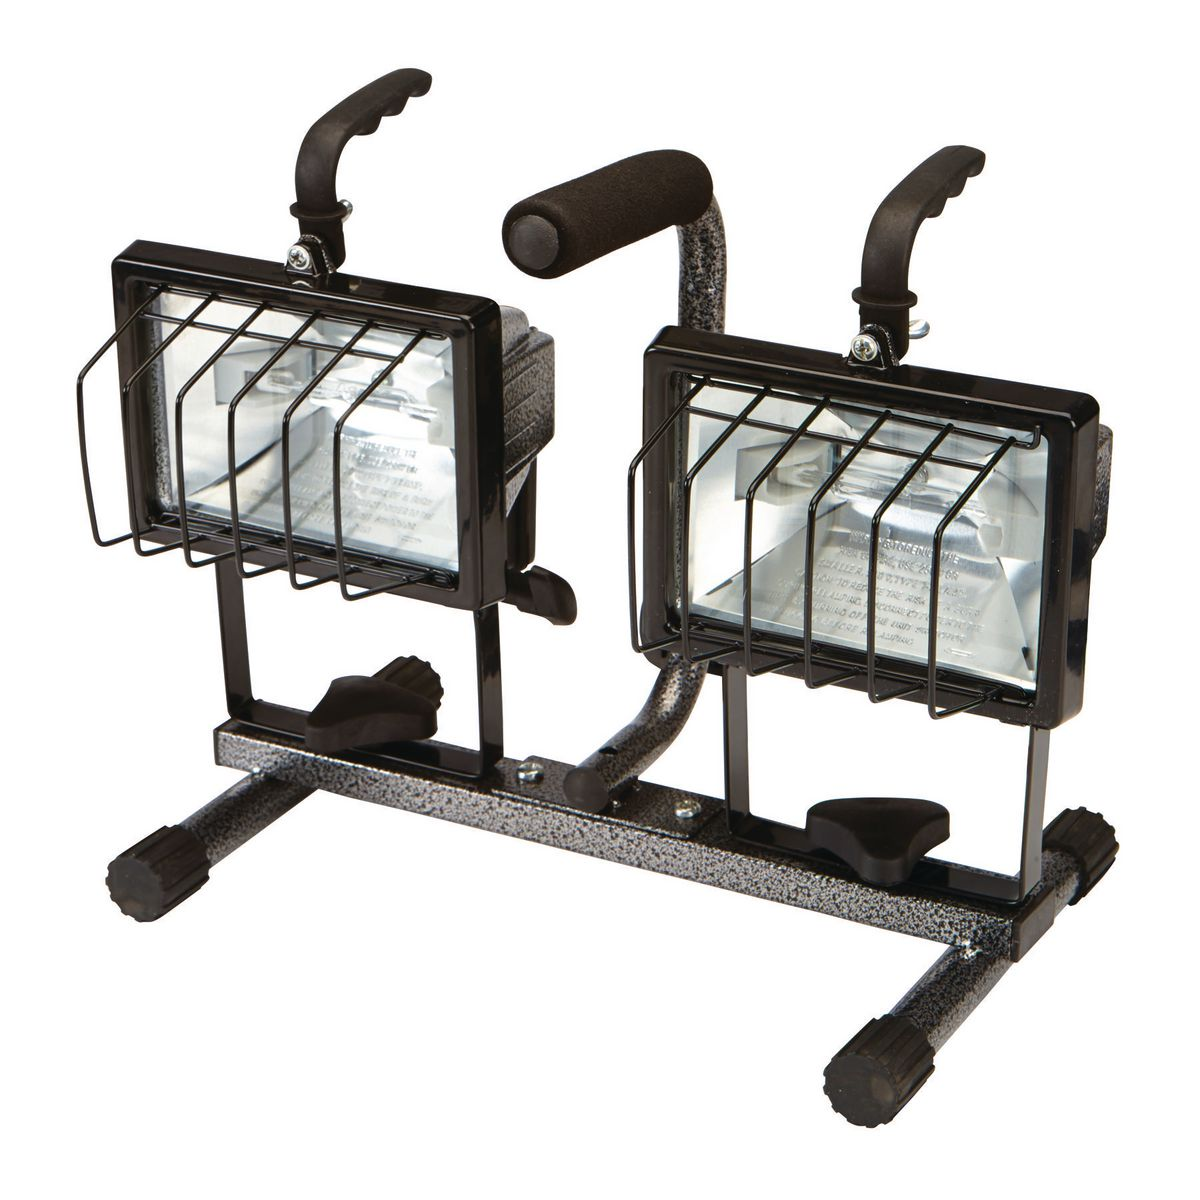 Dual Head Pivoting Work Light With Stand